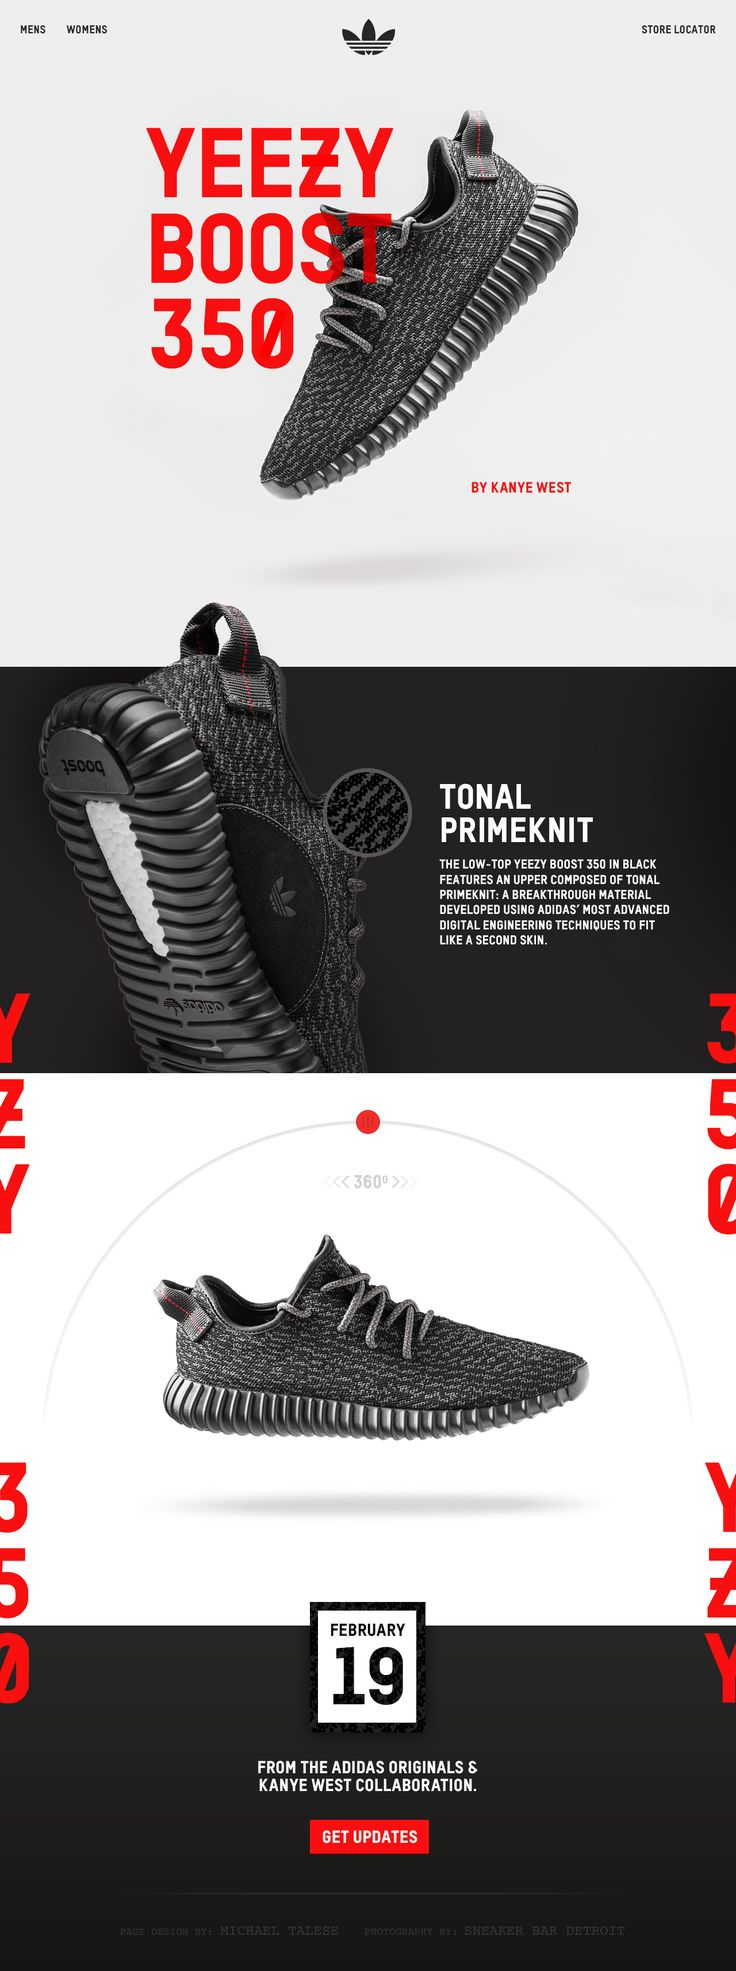 Product page concept for the restock of the YEEZY BOOST 350. By Michael Talese #Design #Digital #UI #Kanye #YZY350